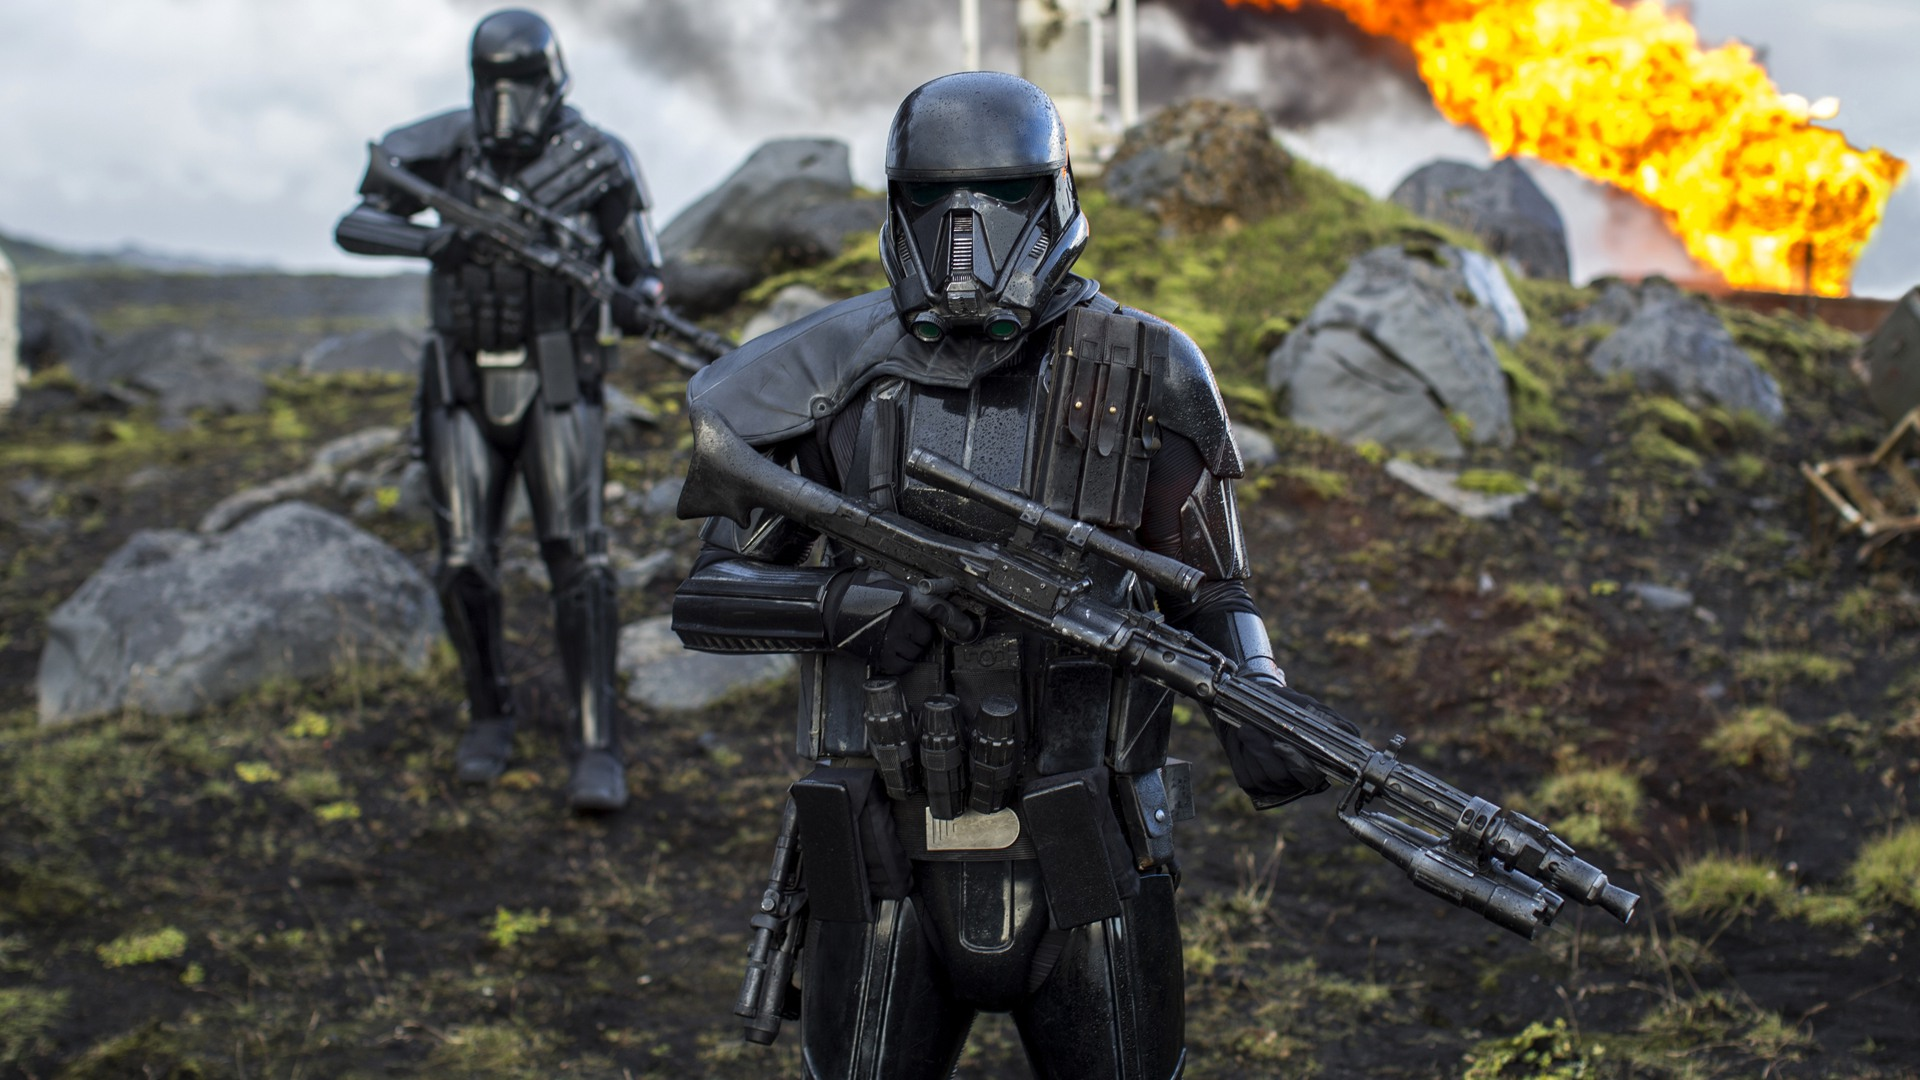 General 1920x1080 Star Wars Rogue One: A Star Wars Story Imperial Death Trooper movies Imperial Forces